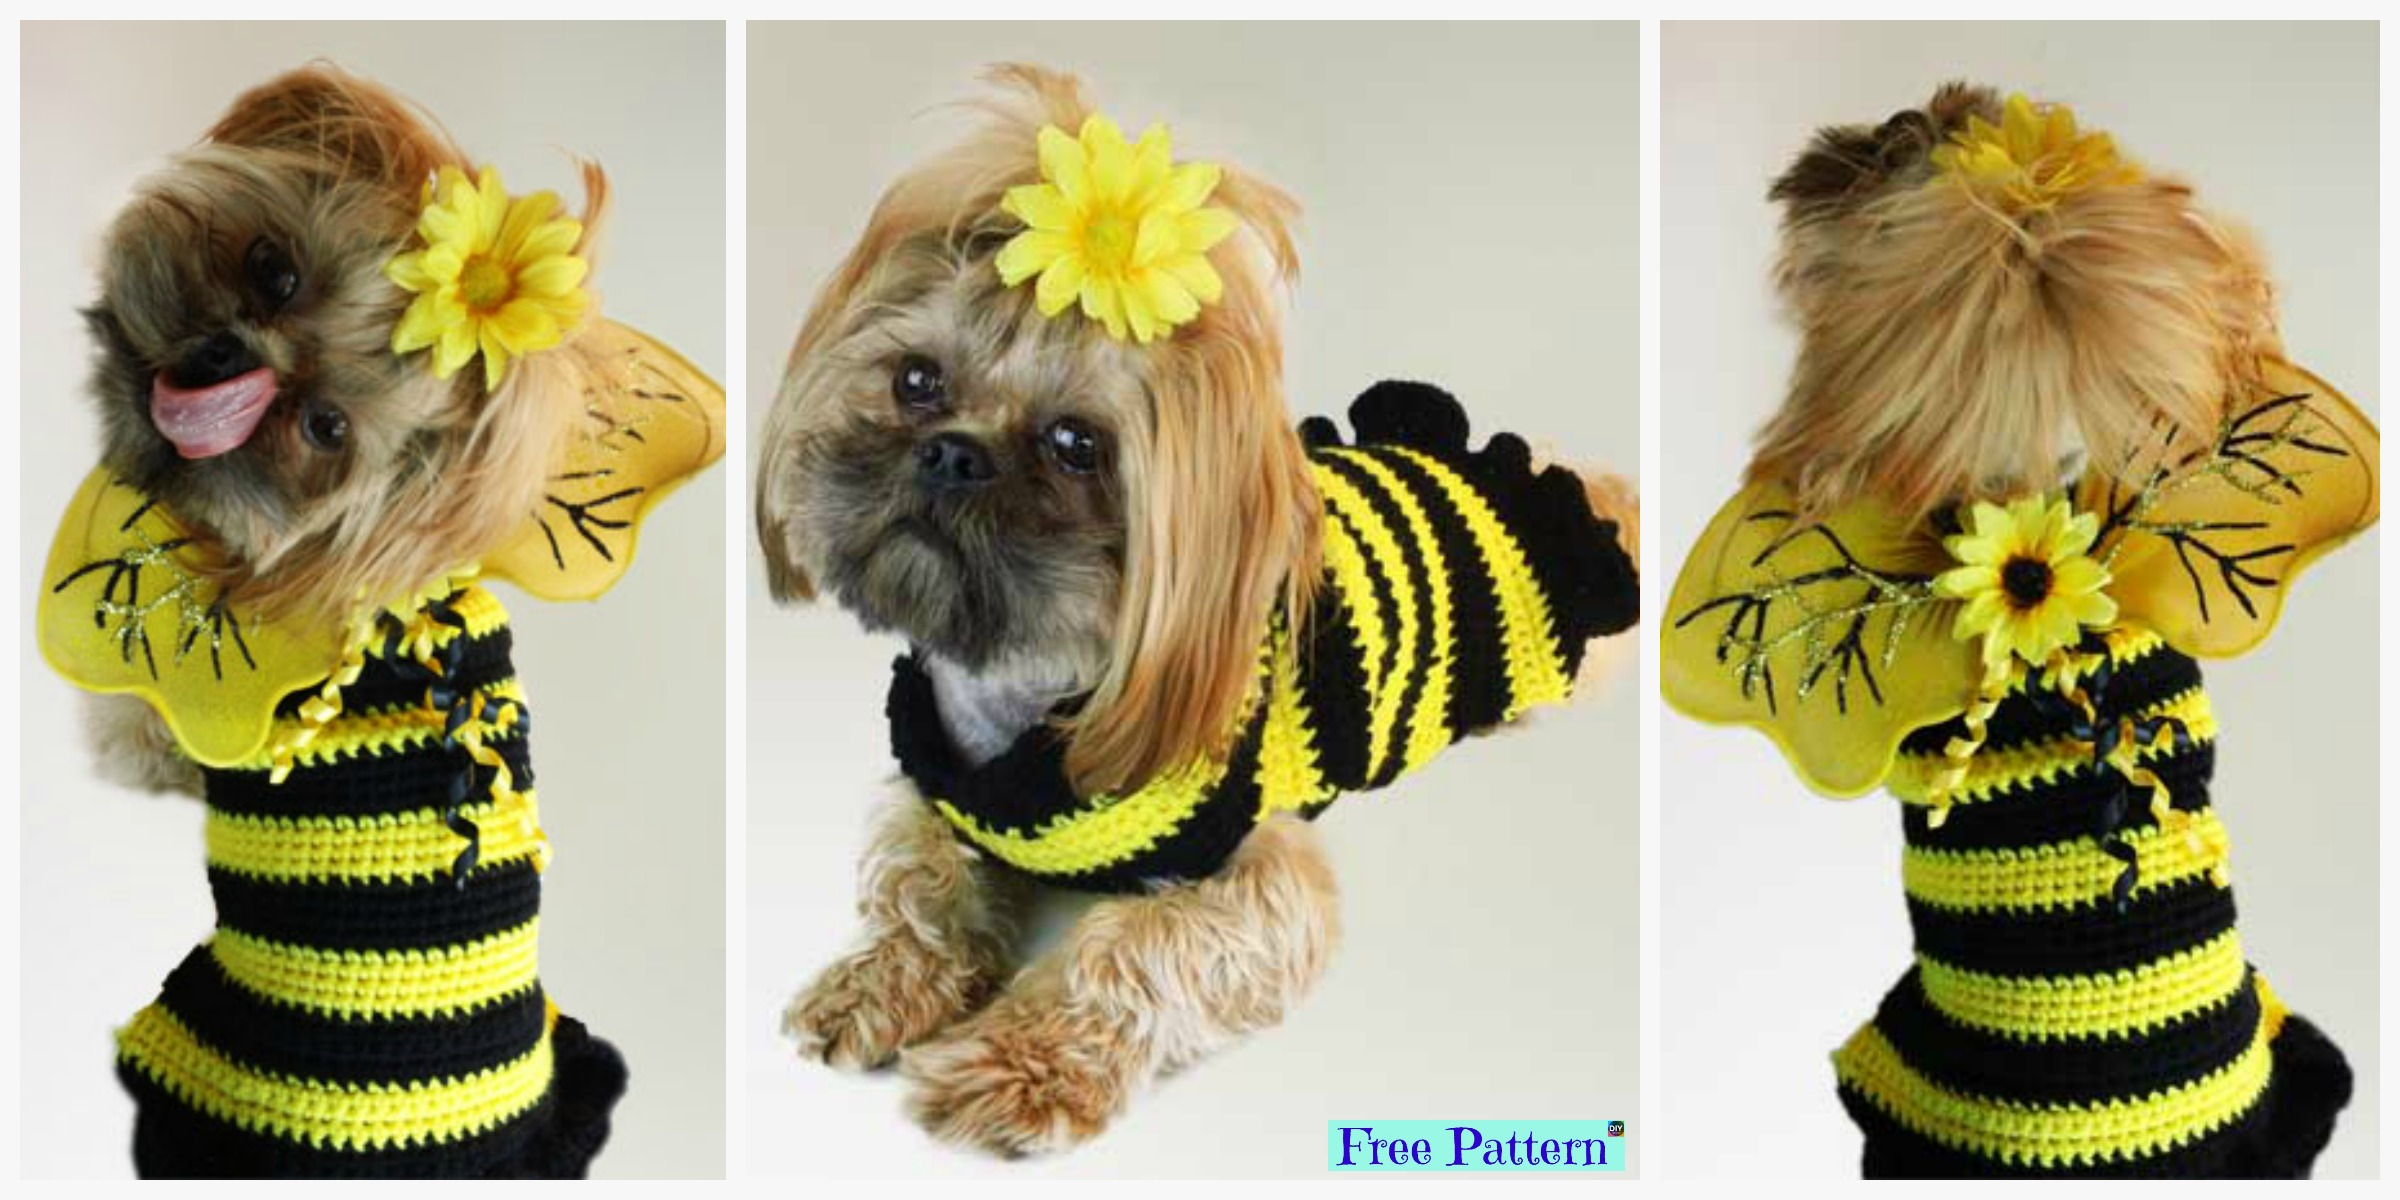 Bumble Bee Crochet Dog Sweater - Free Pattern - DIY 4 EVER